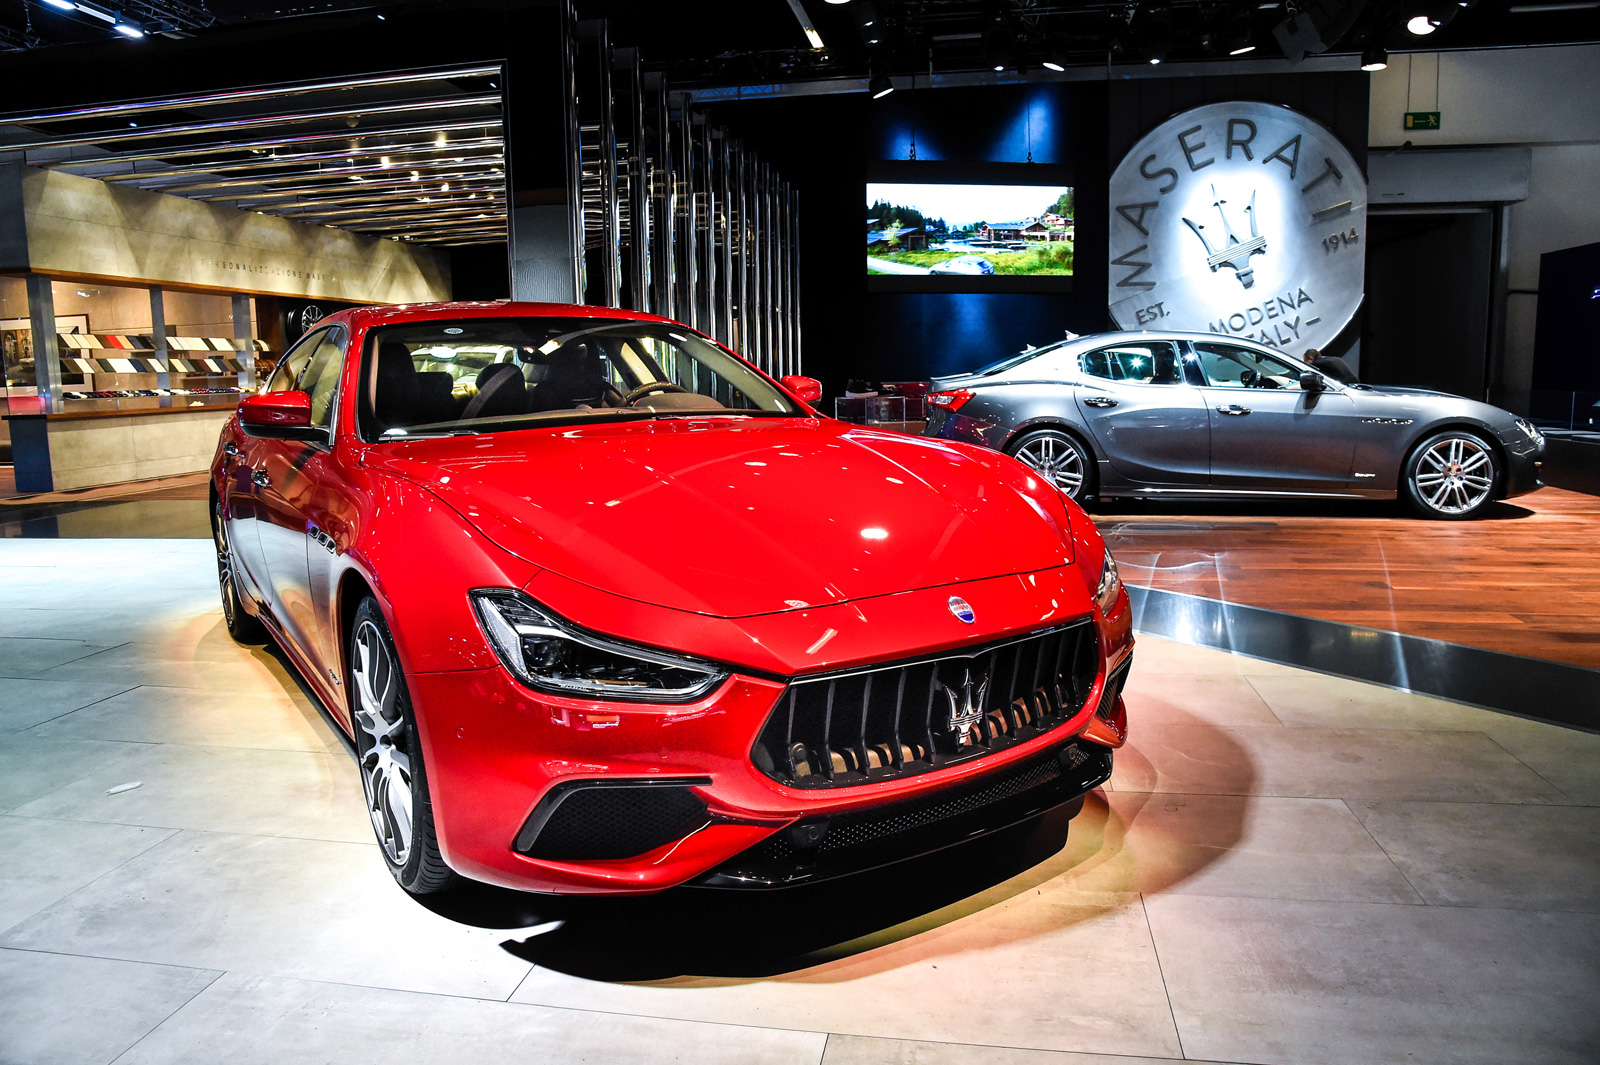 2018 maserati ghibli lands with updated looks more power news. Black Bedroom Furniture Sets. Home Design Ideas